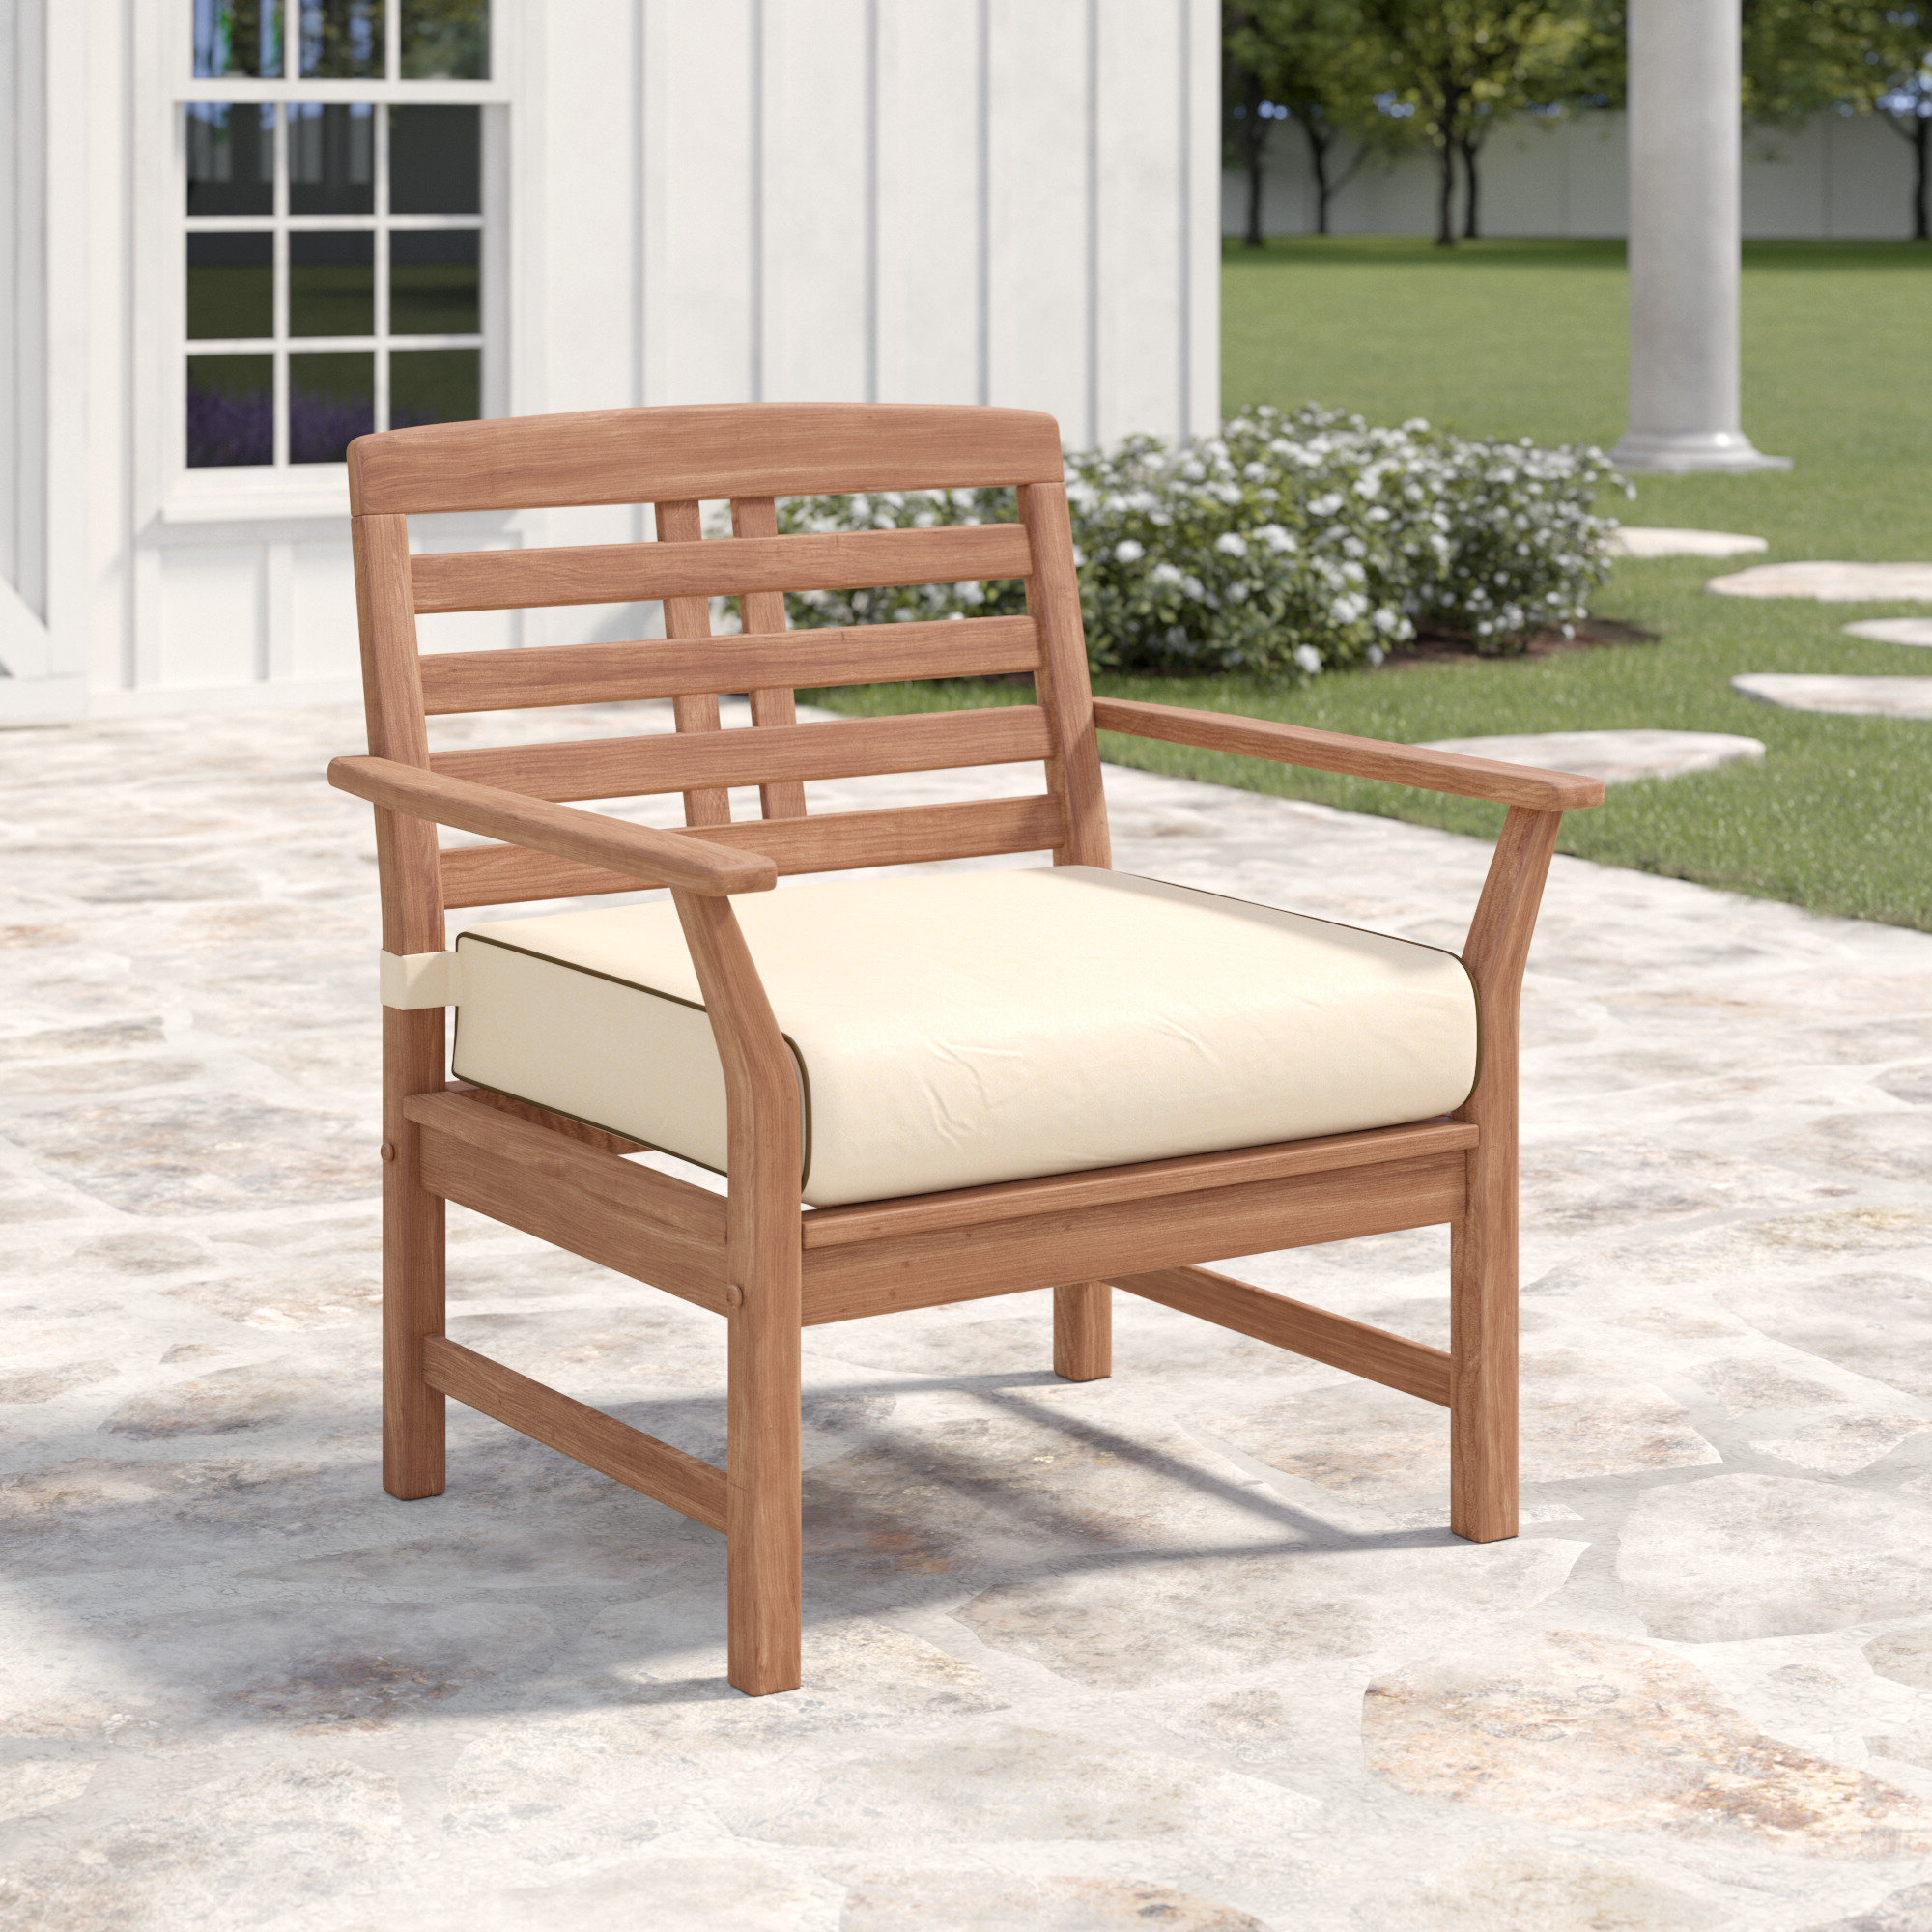 Most Popular Calila Teak Patio Chair With Cushions Regarding Tim X Back Patio Loveseats With Cushions (View 20 of 20)